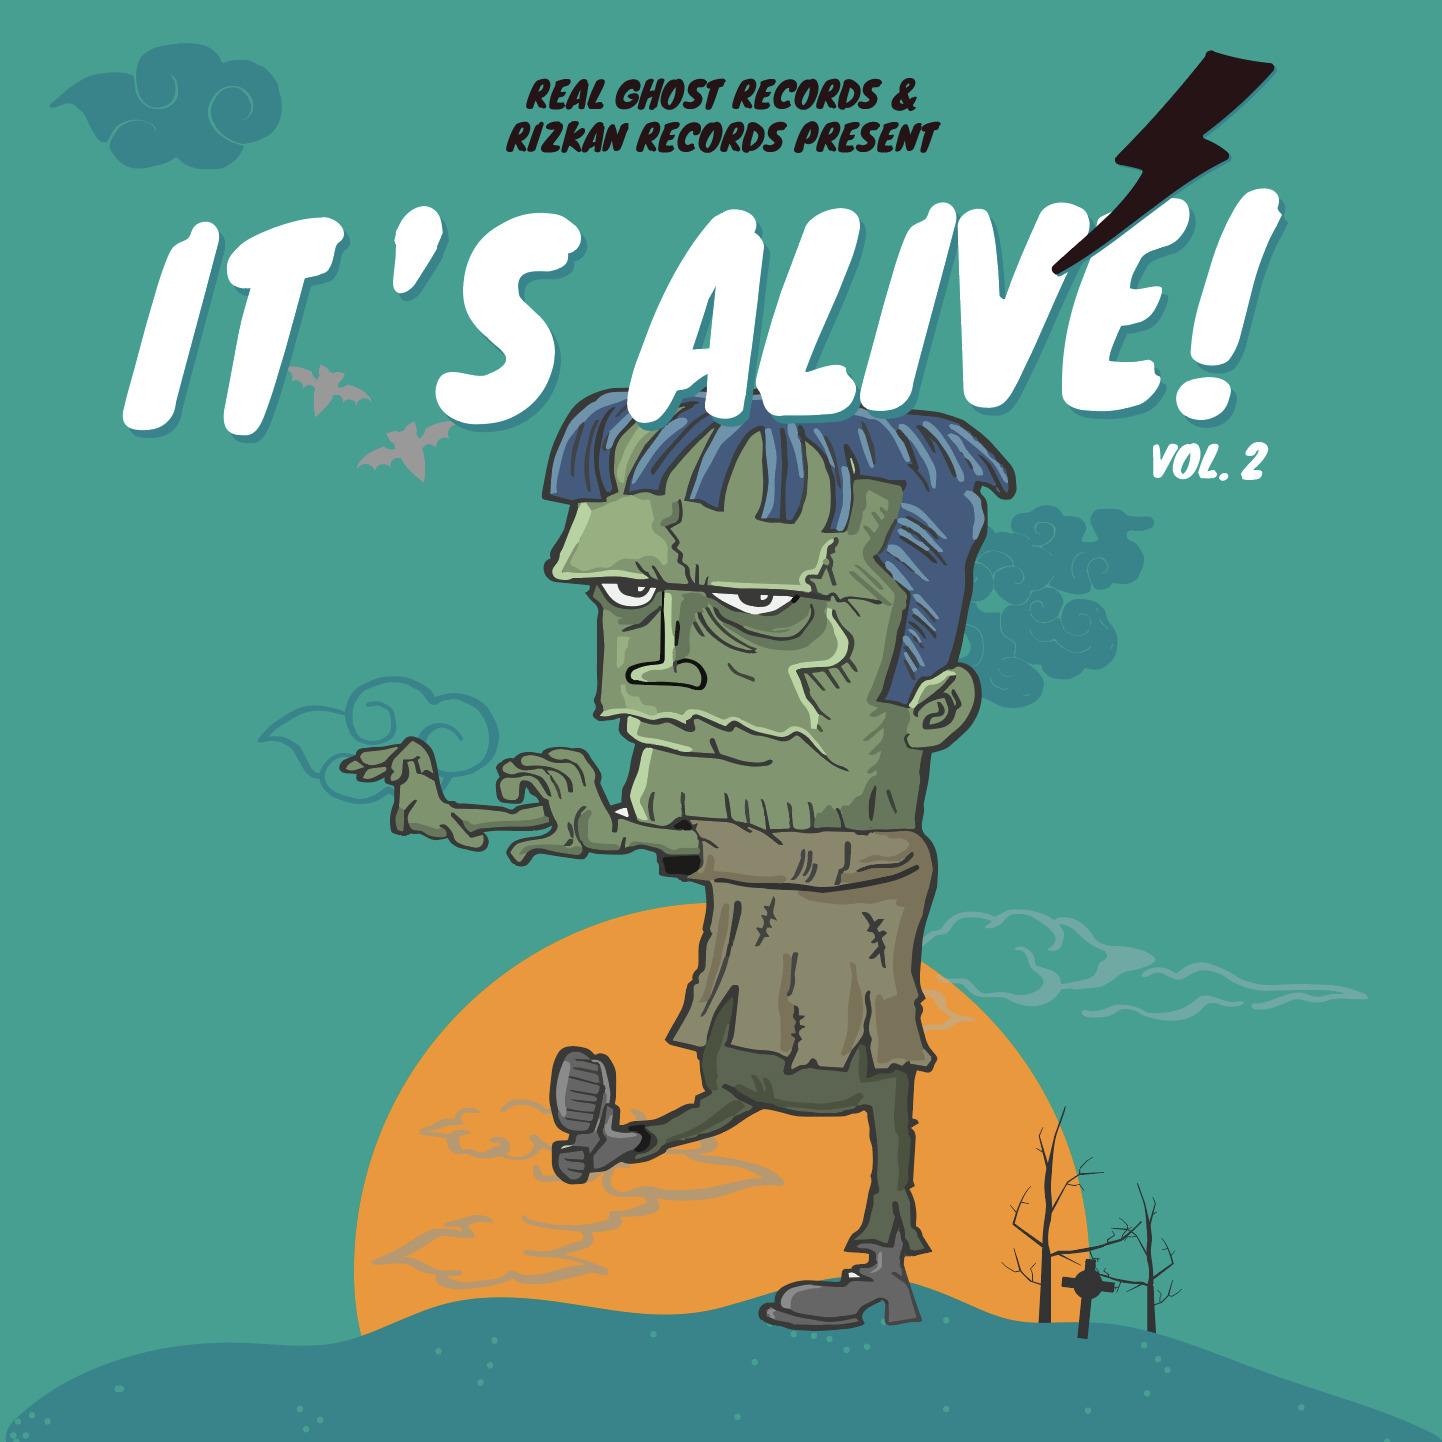 IT'S ALIVE! VOL. 2 feat Rizkan Records